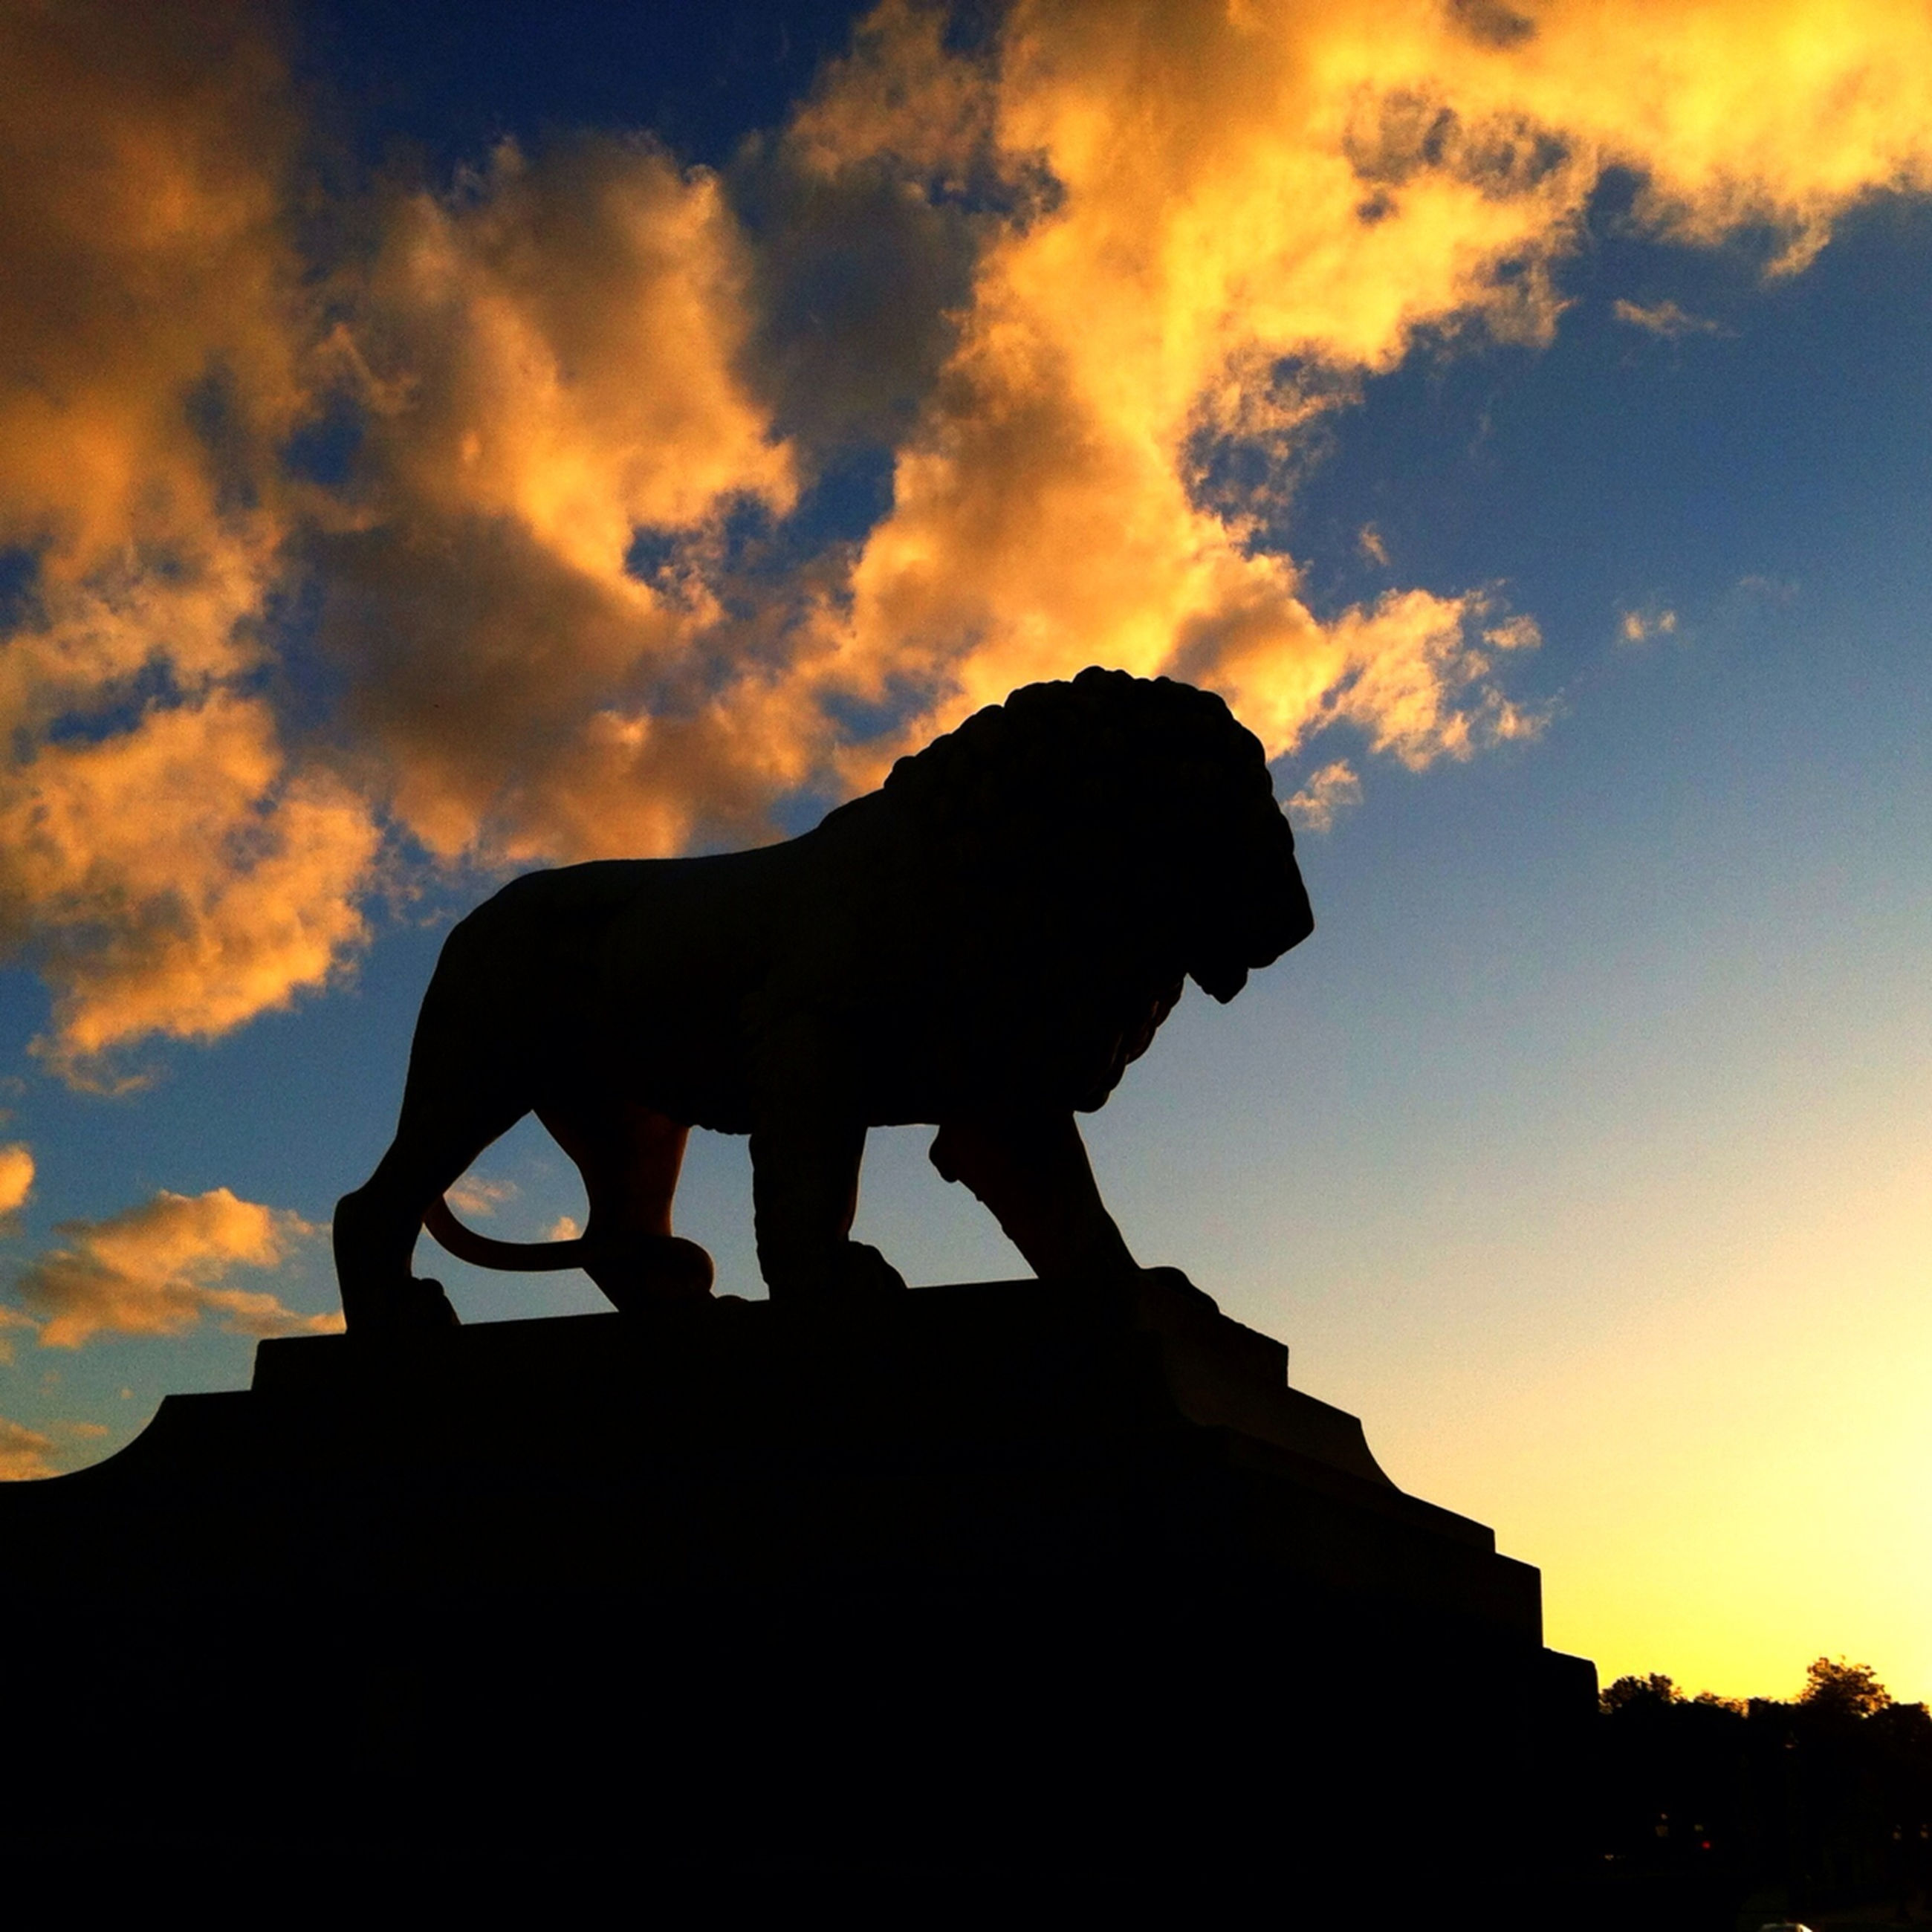 sunset, silhouette, sky, low angle view, cloud - sky, built structure, architecture, animal themes, one animal, building exterior, cloud, mammal, orange color, horse, cloudy, statue, sculpture, outdoors, domestic animals, dusk